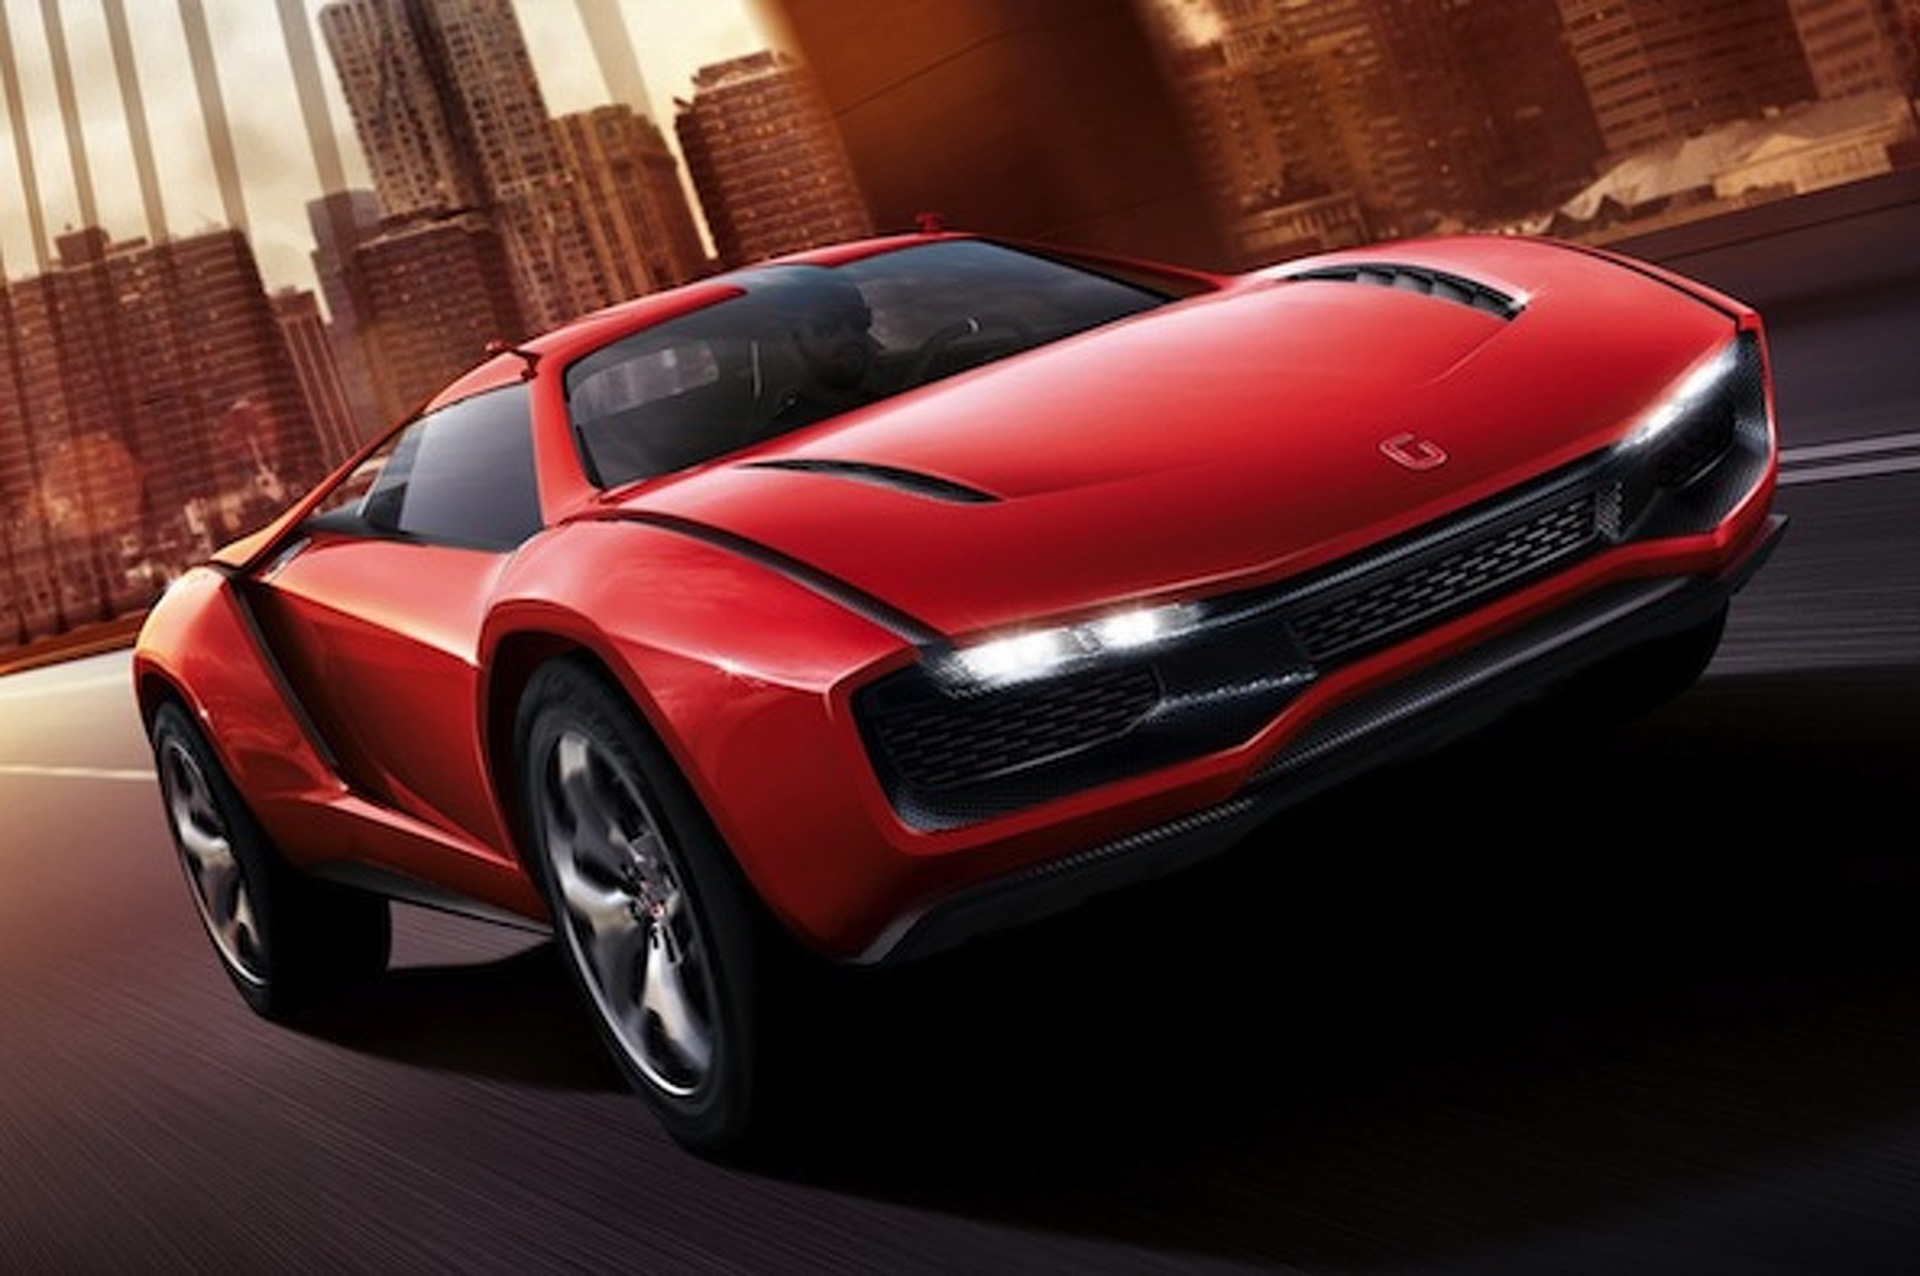 Top 10 Rides of the 2013 Geneva Motor Show